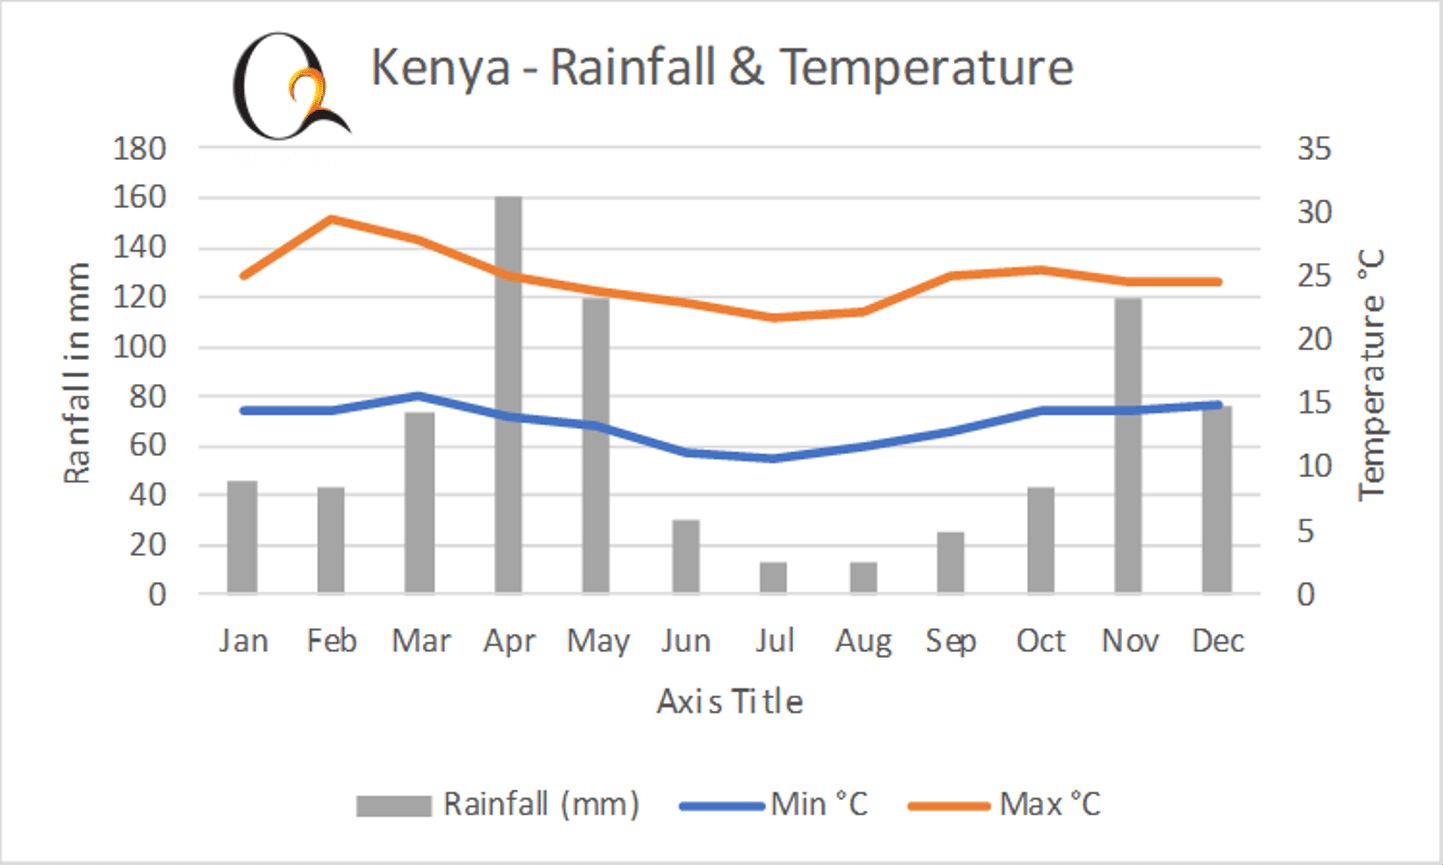 Kenya - Rainfall and Temperature